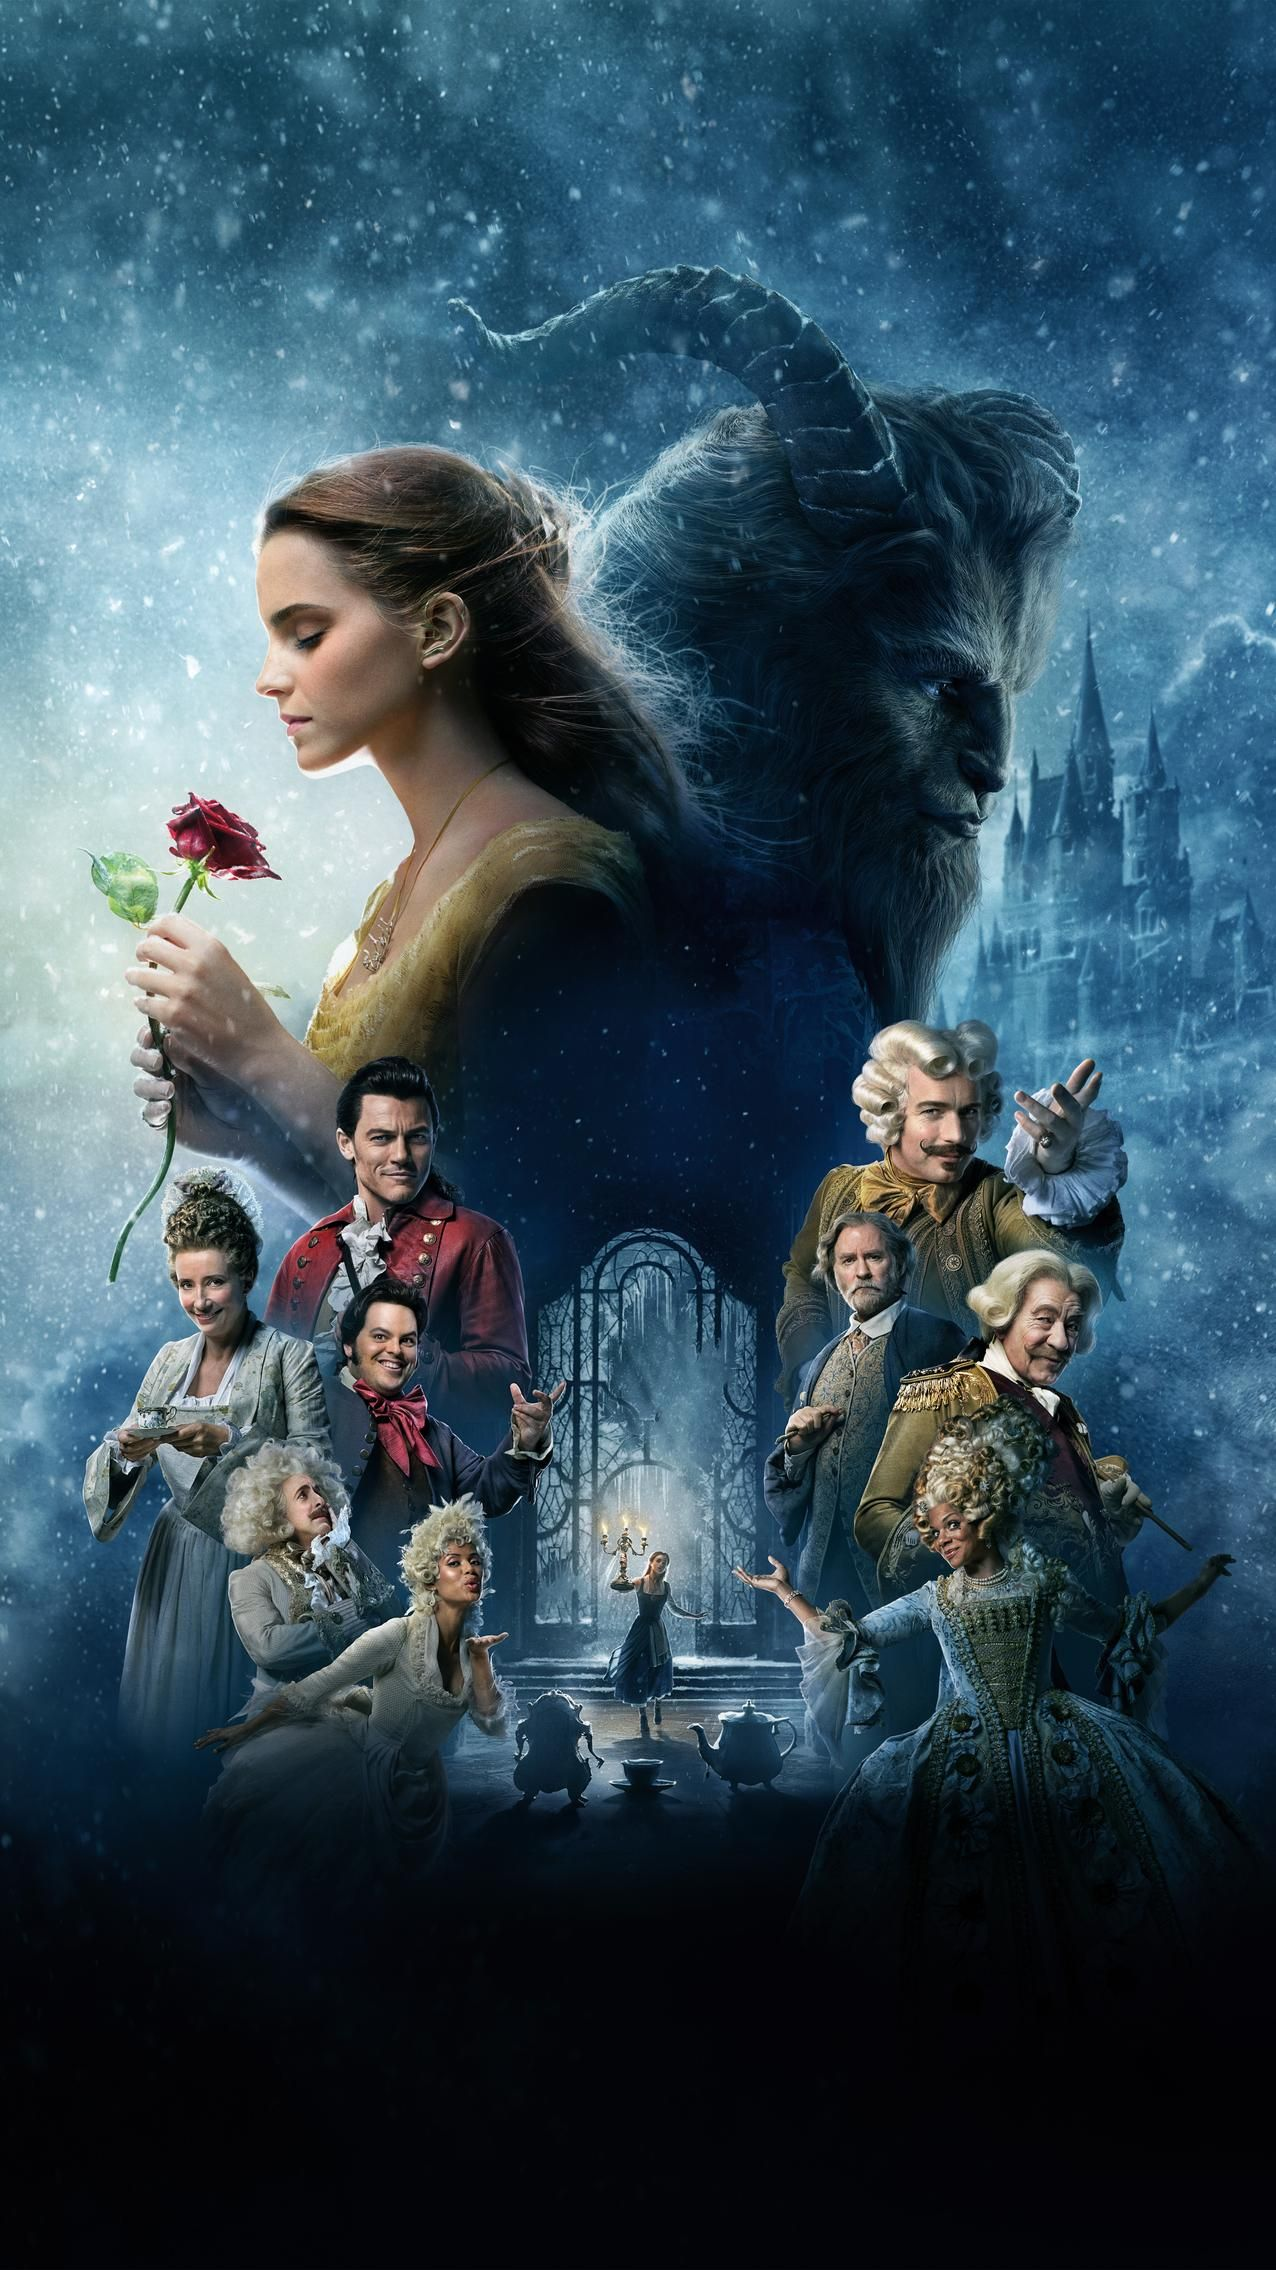 Beauty And The Beast 2017 Phone Wallpaper Beauty The